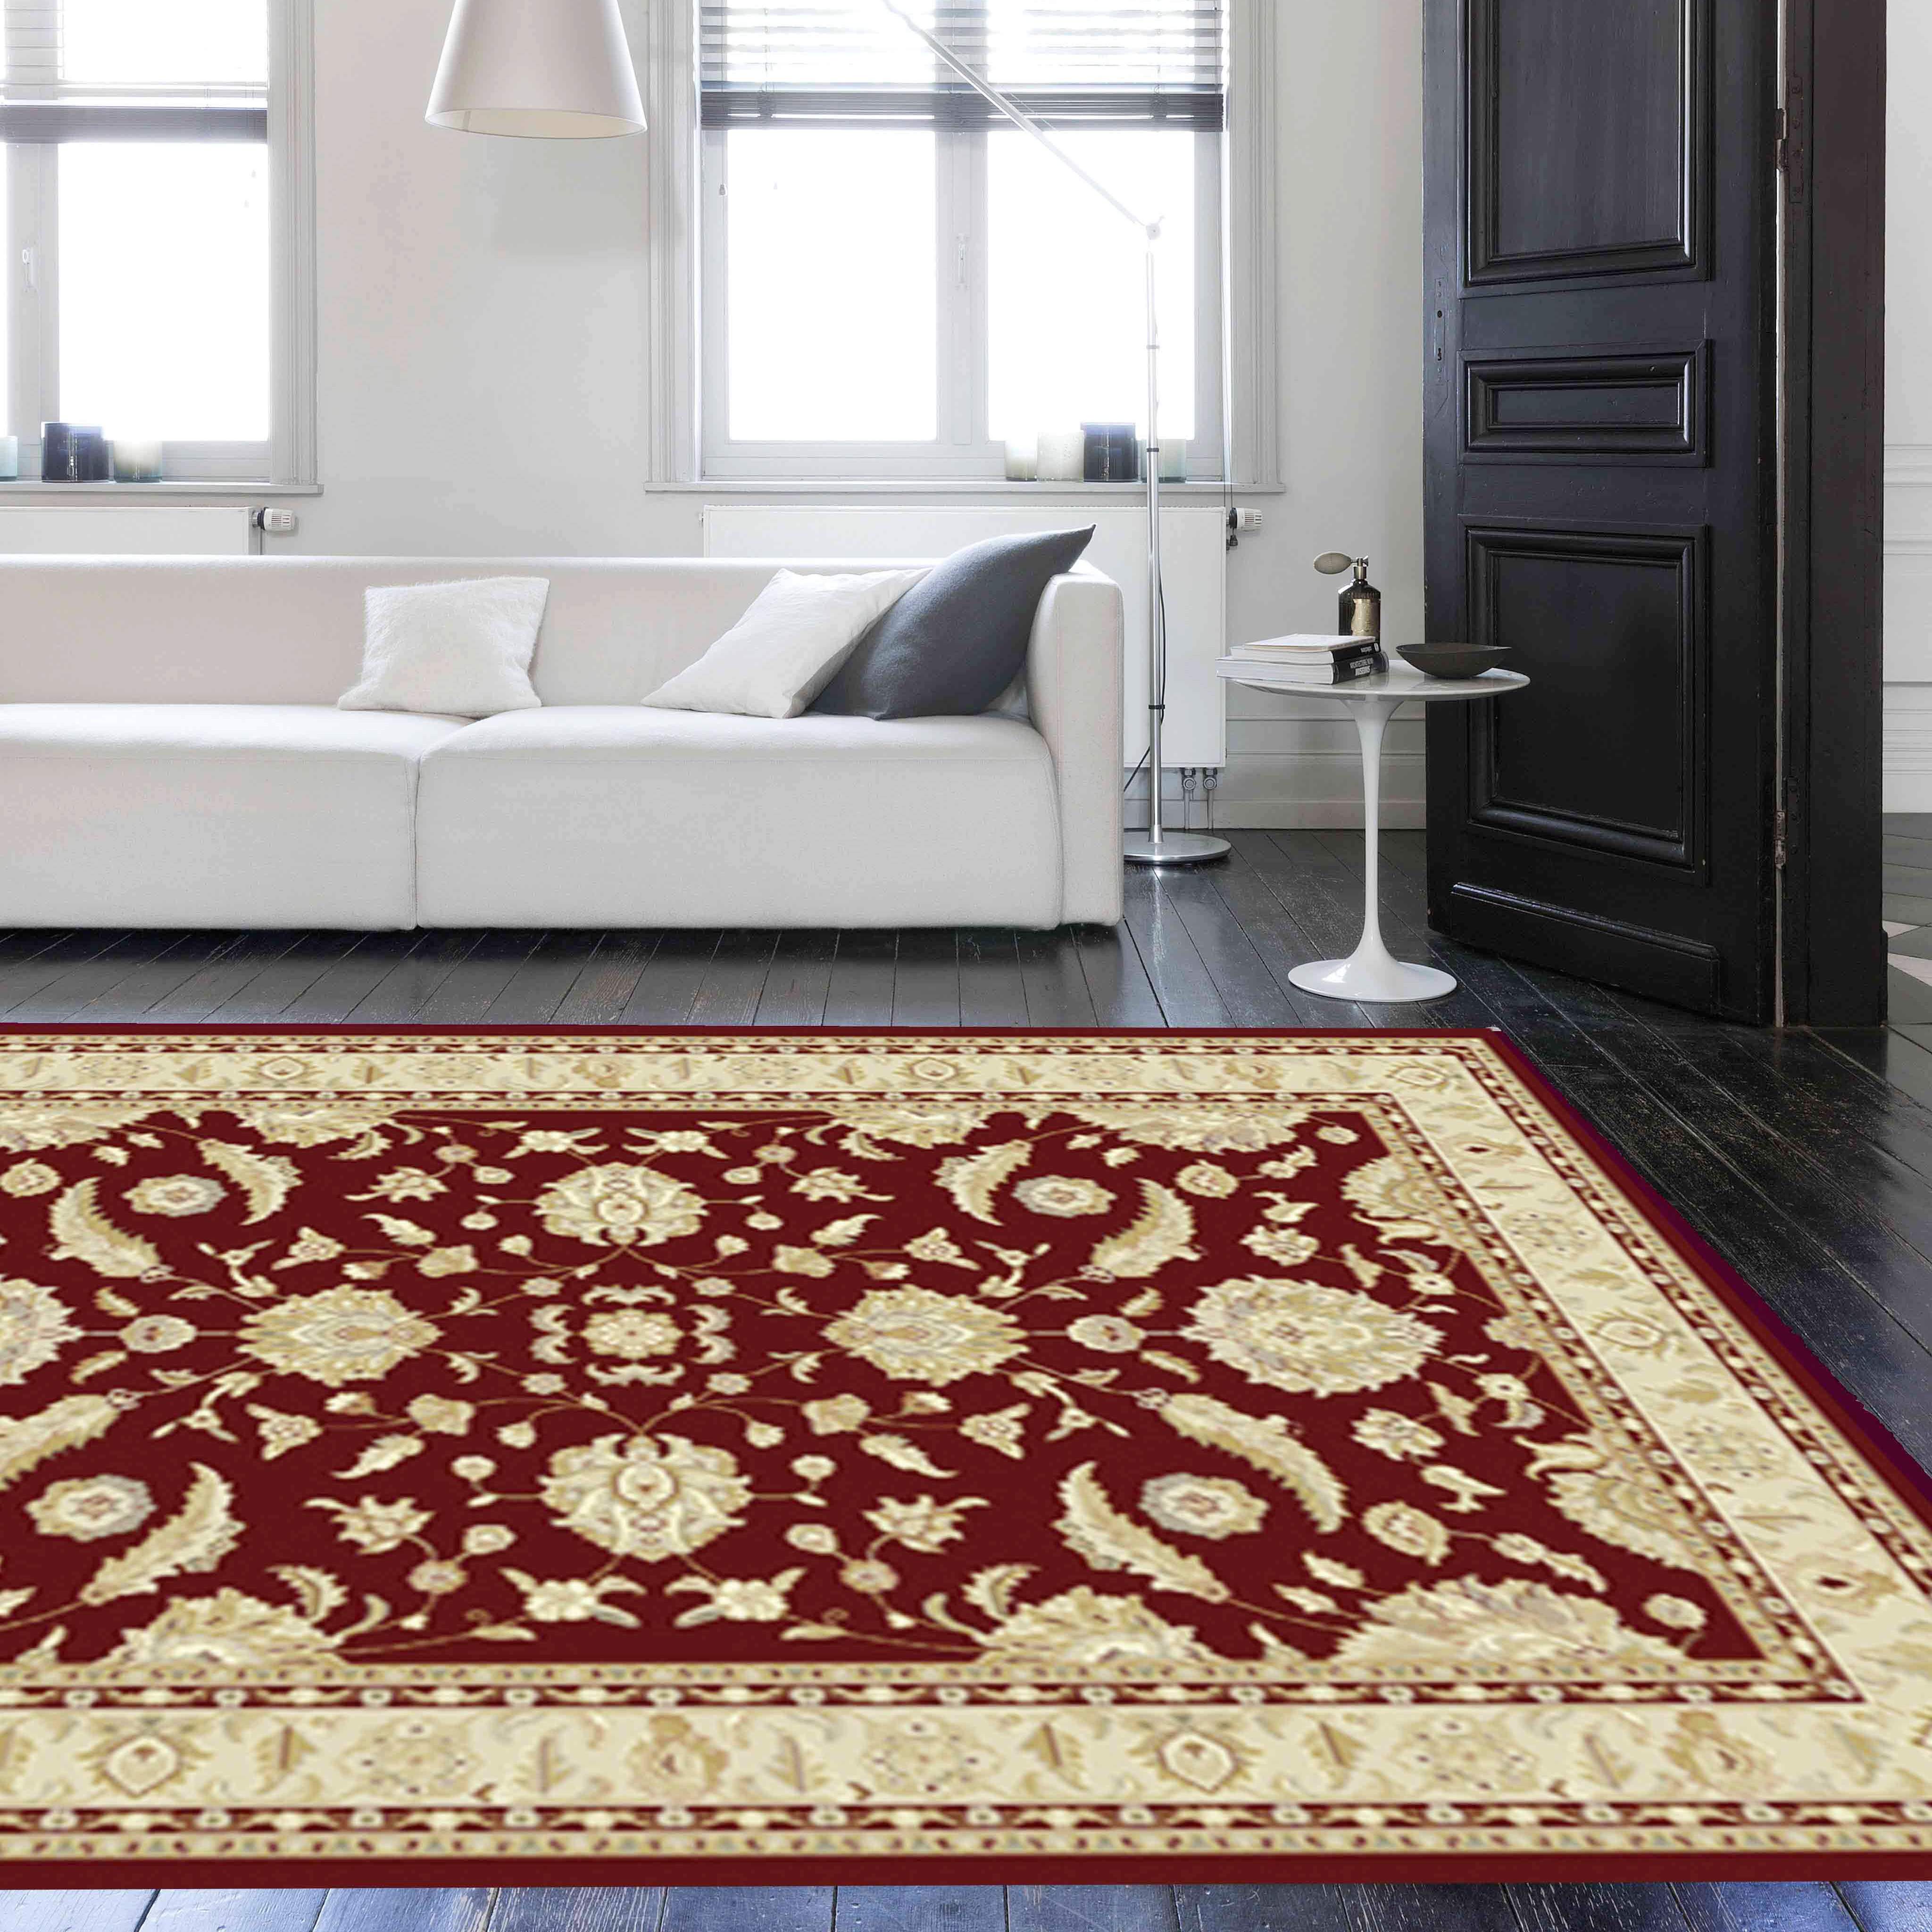 Noble Art Traditional Rugs 65124 390 in Brown and Beige